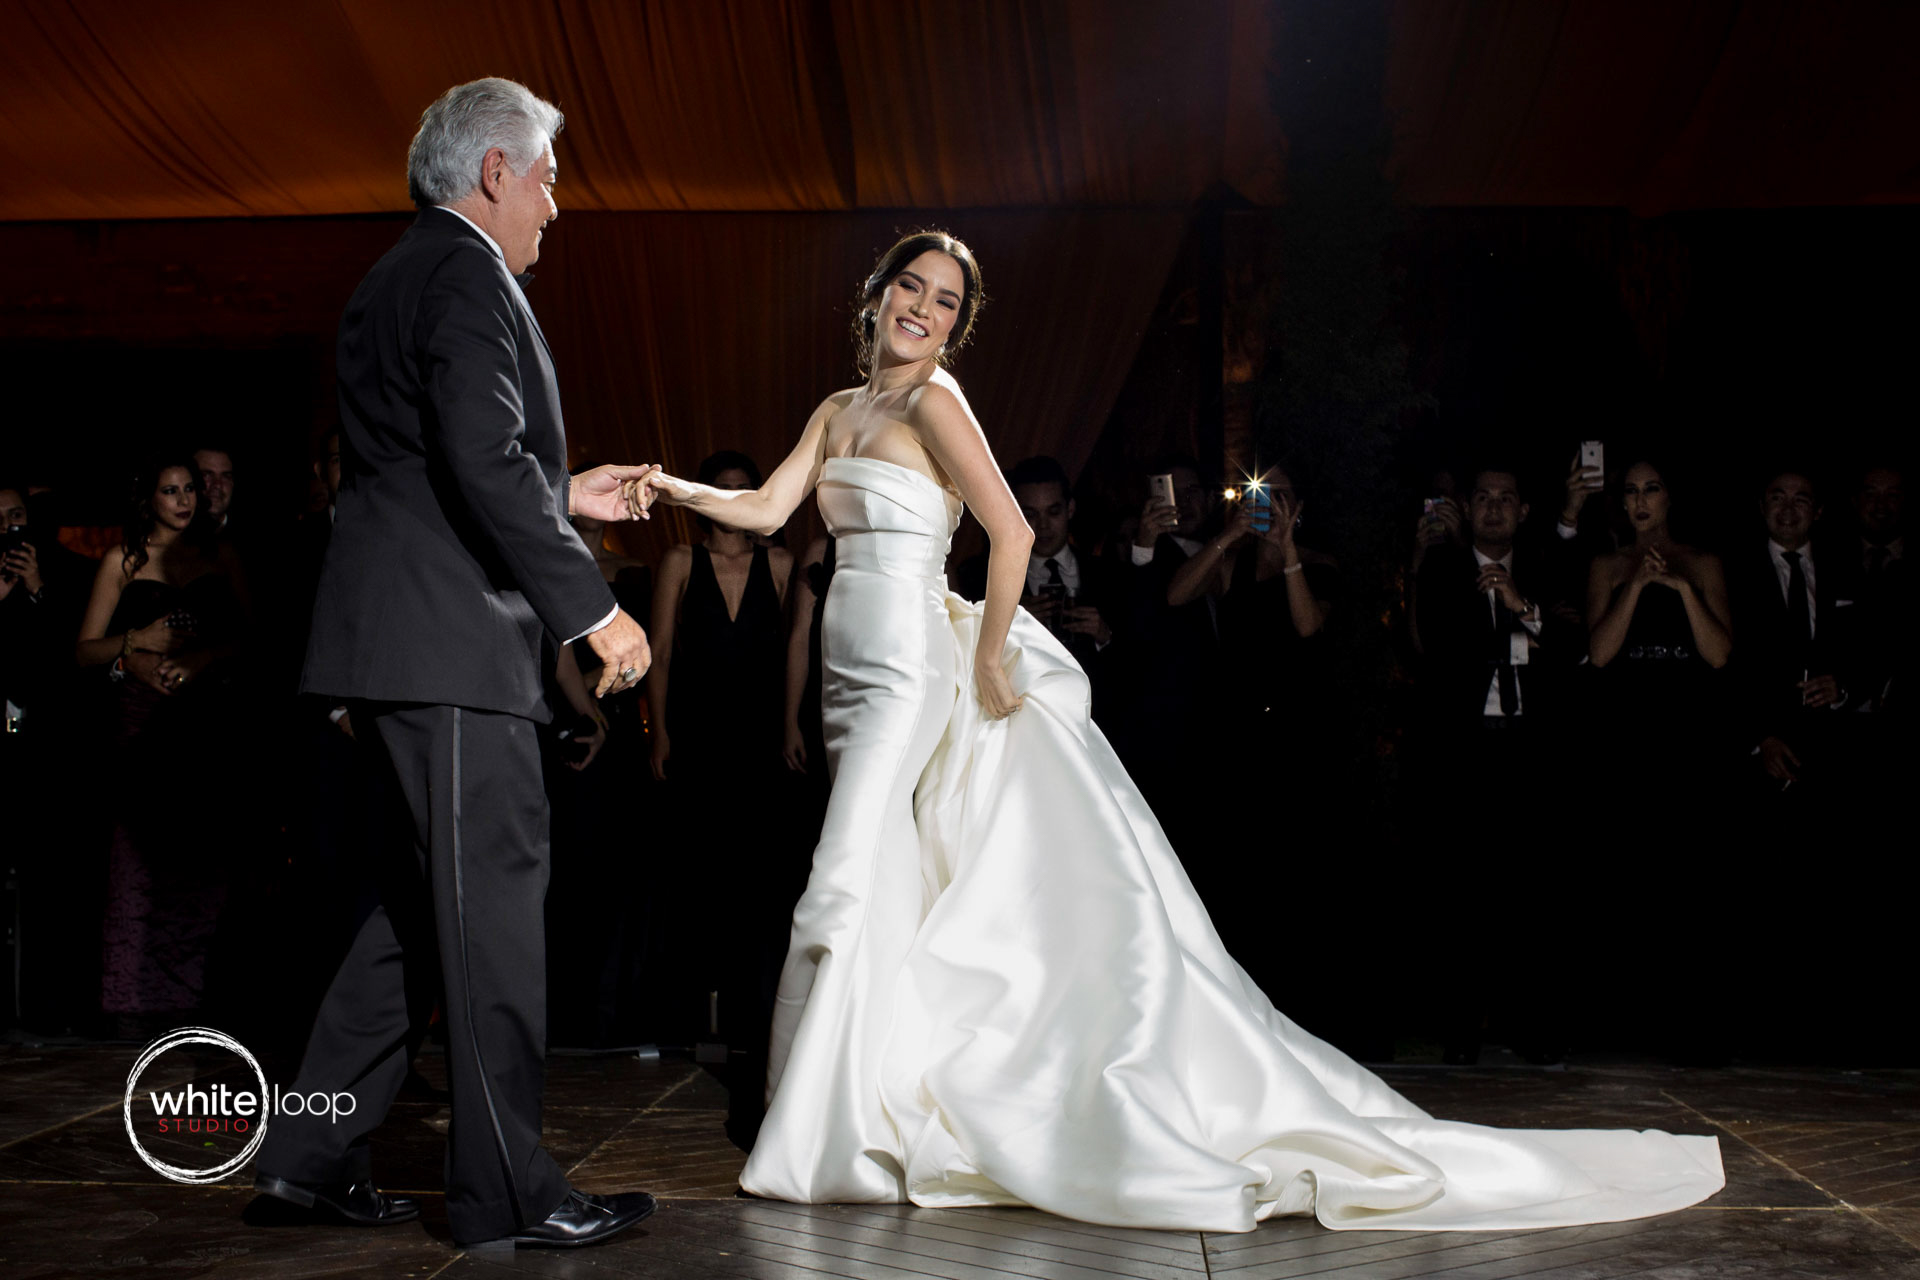 Marisol and Jorge, Wedding in Guadalajara, The bride dance dance with the father